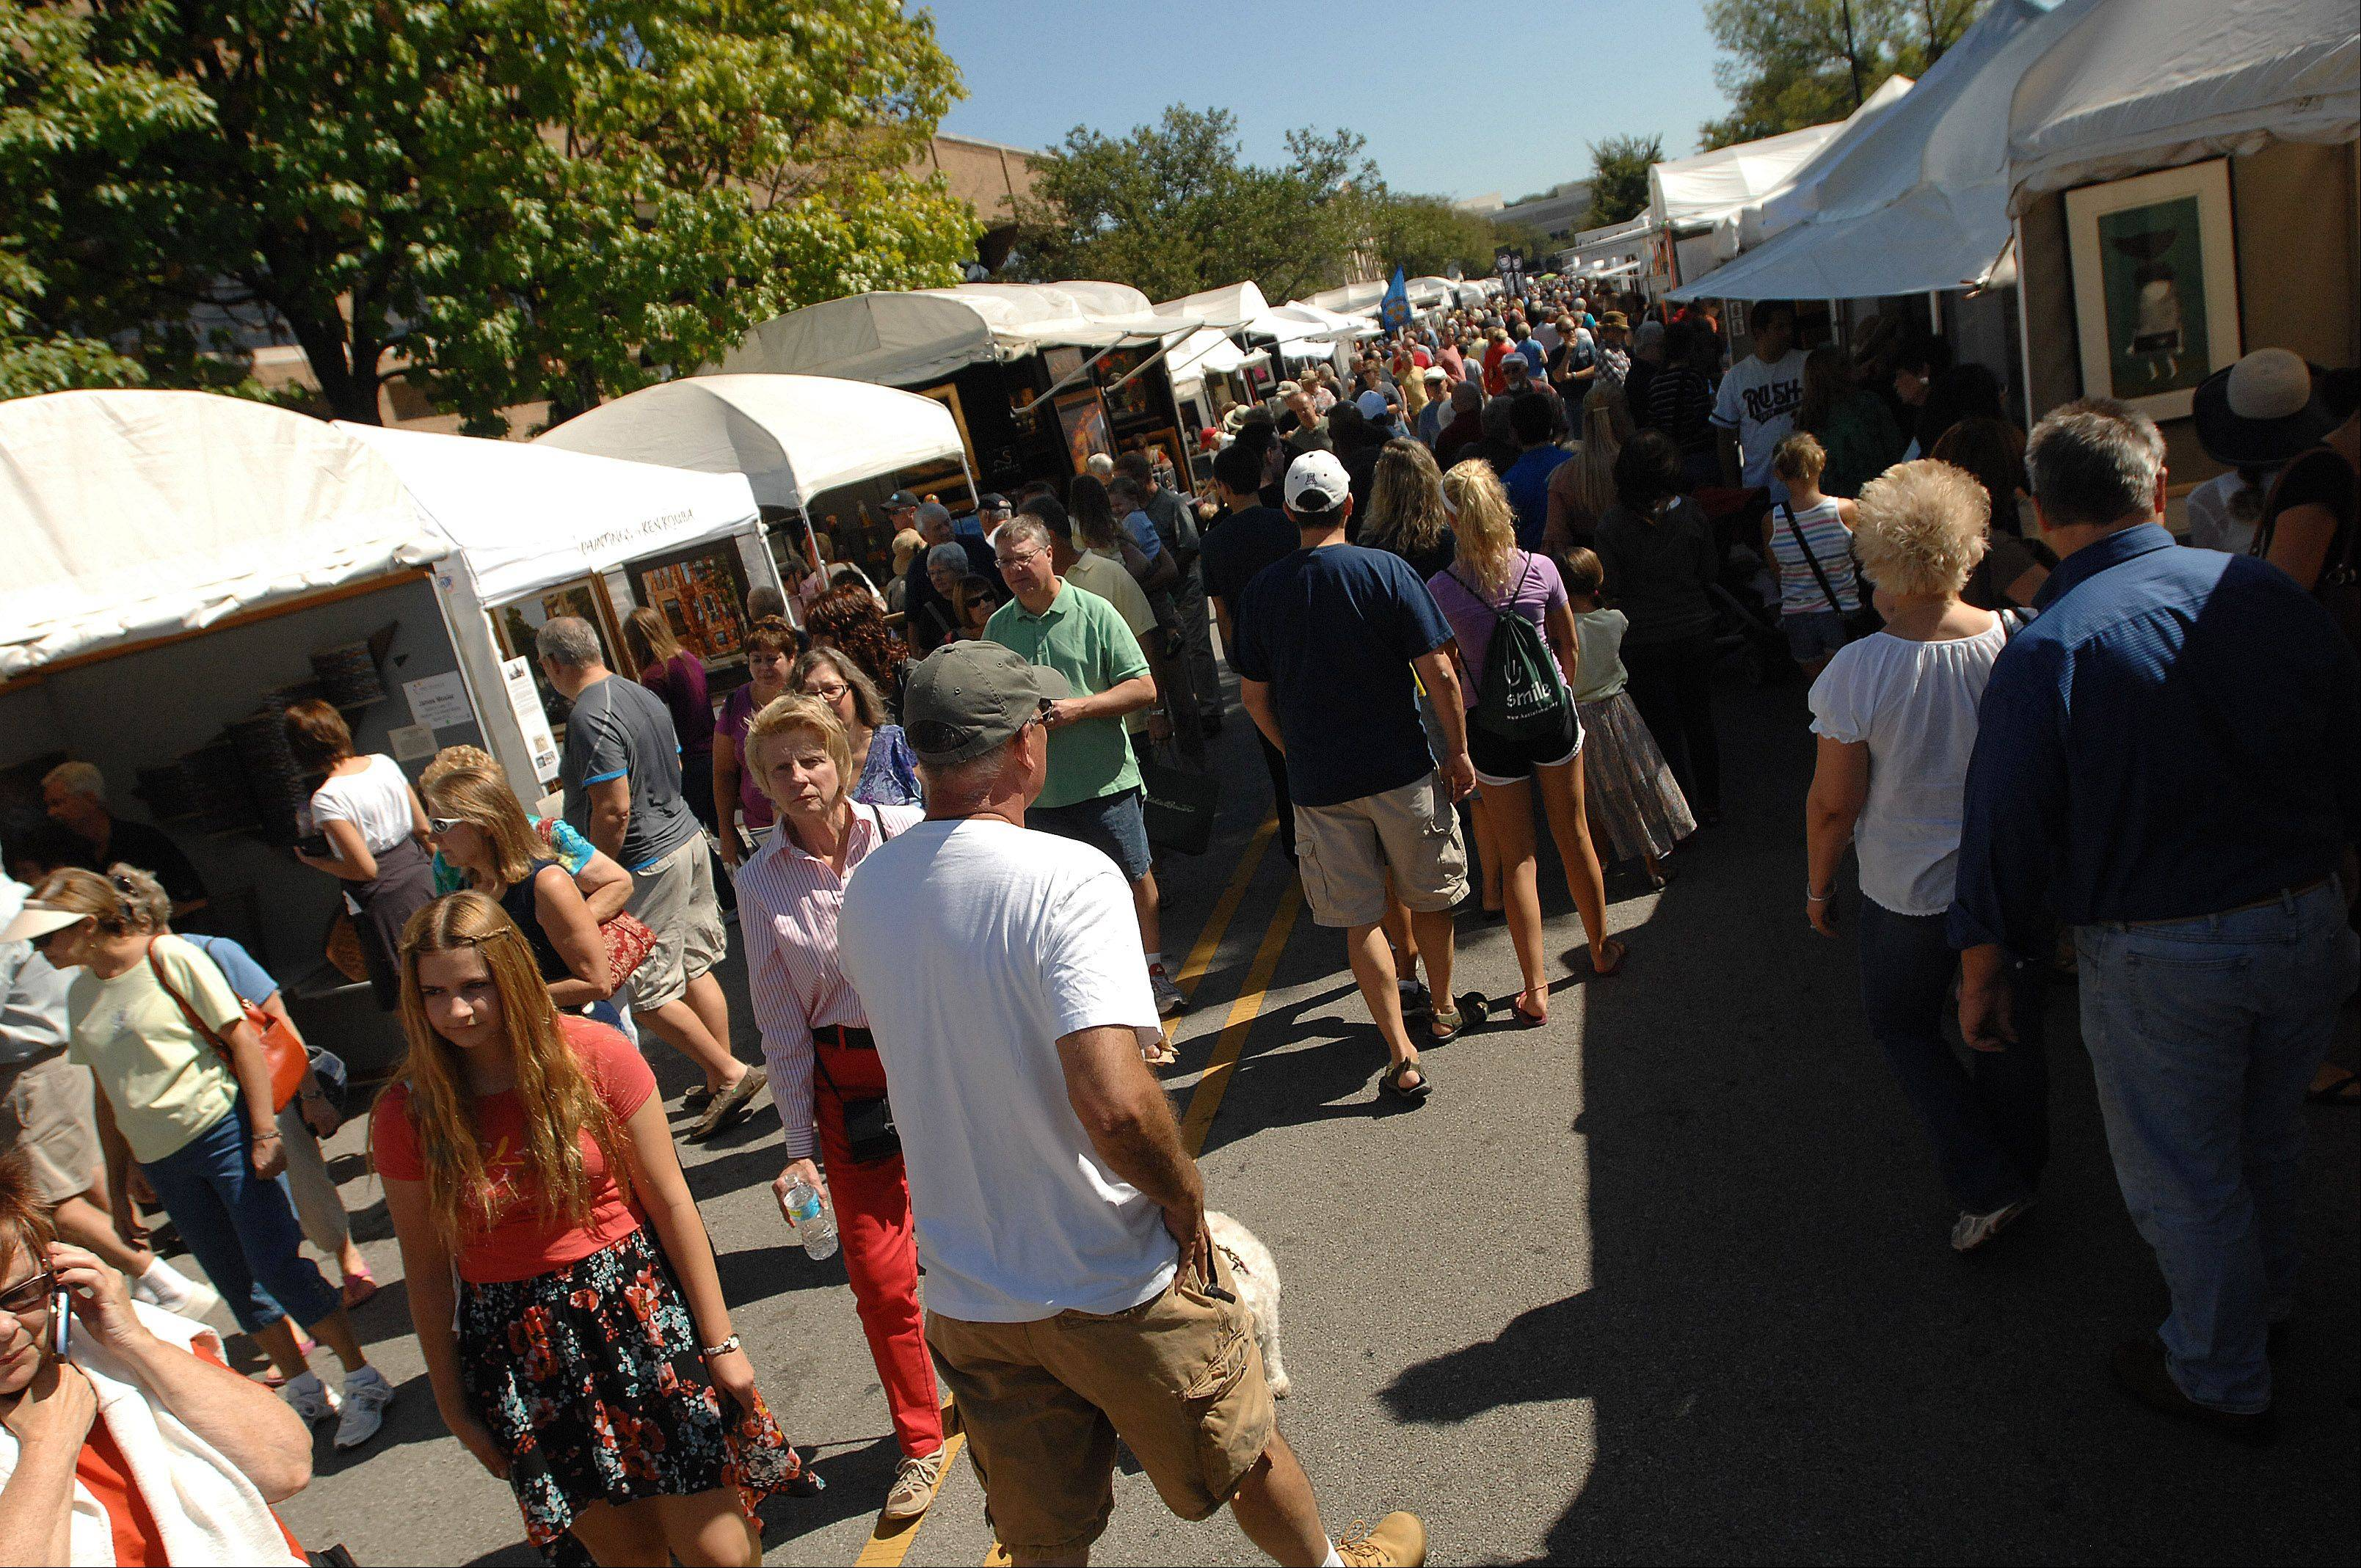 The 27th annual Naperville Fine Art Fair features about 140 booths displaying paintings, pottery, jewelry, photography and other forms of art. The event continues from 10 a.m. to 5 p.m. Sunday in downtown Naperville.